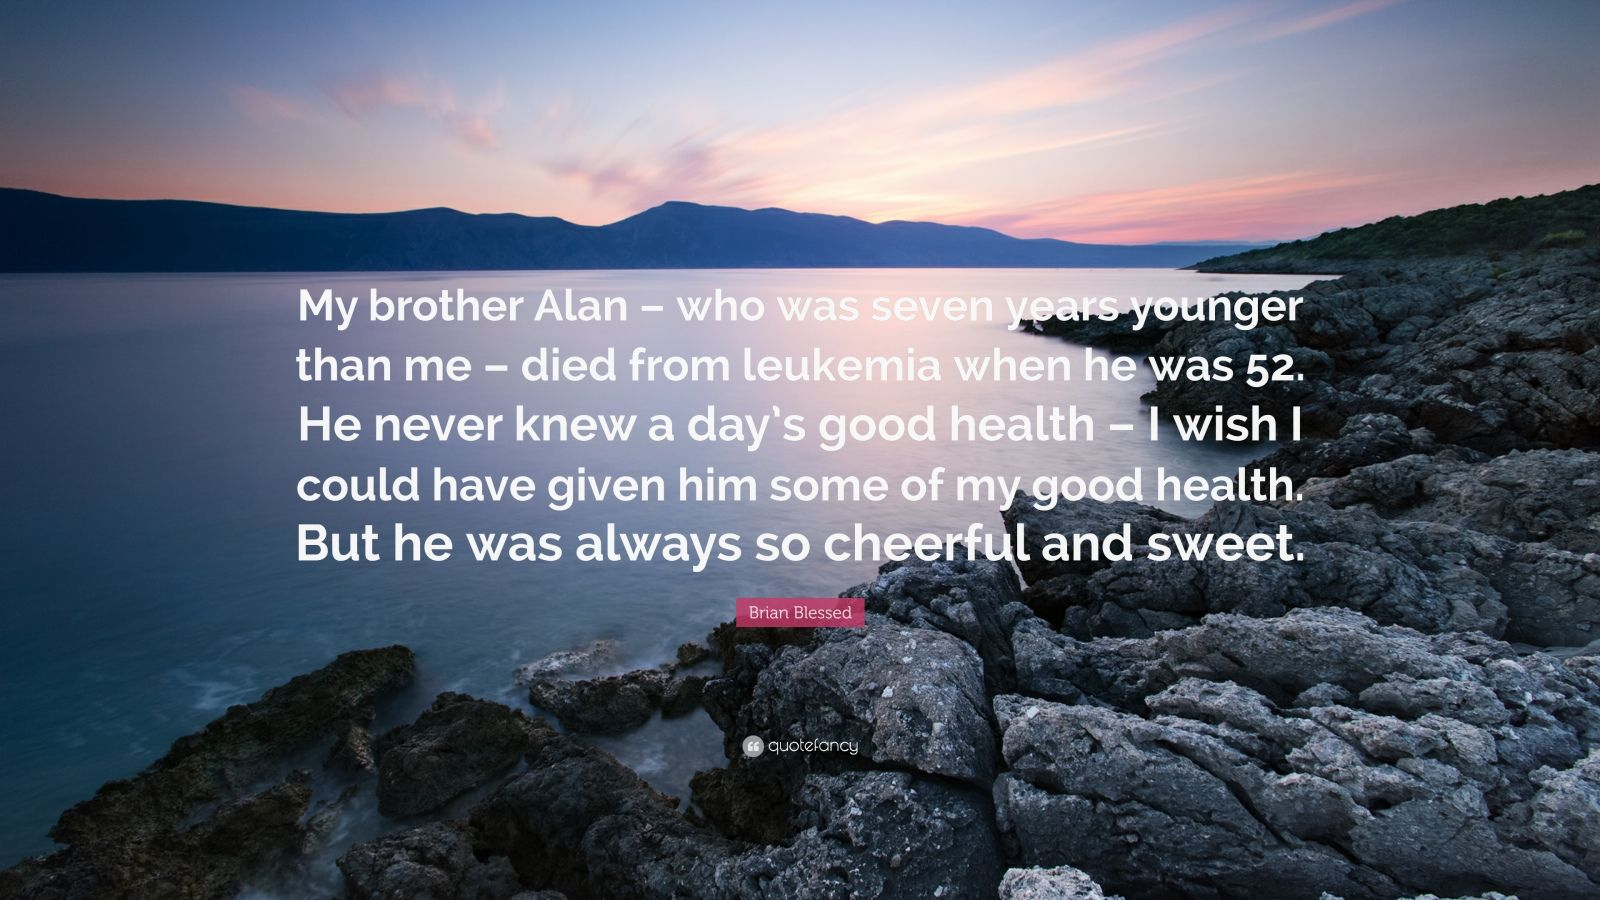 "Brian Blessed Quote: ""My brother Alan – who was seven years younger than me – died from leukemia when he was 52. He never knew a day's good health – I wish I could have given him some of my good health. But he was always so cheerful and sweet."""